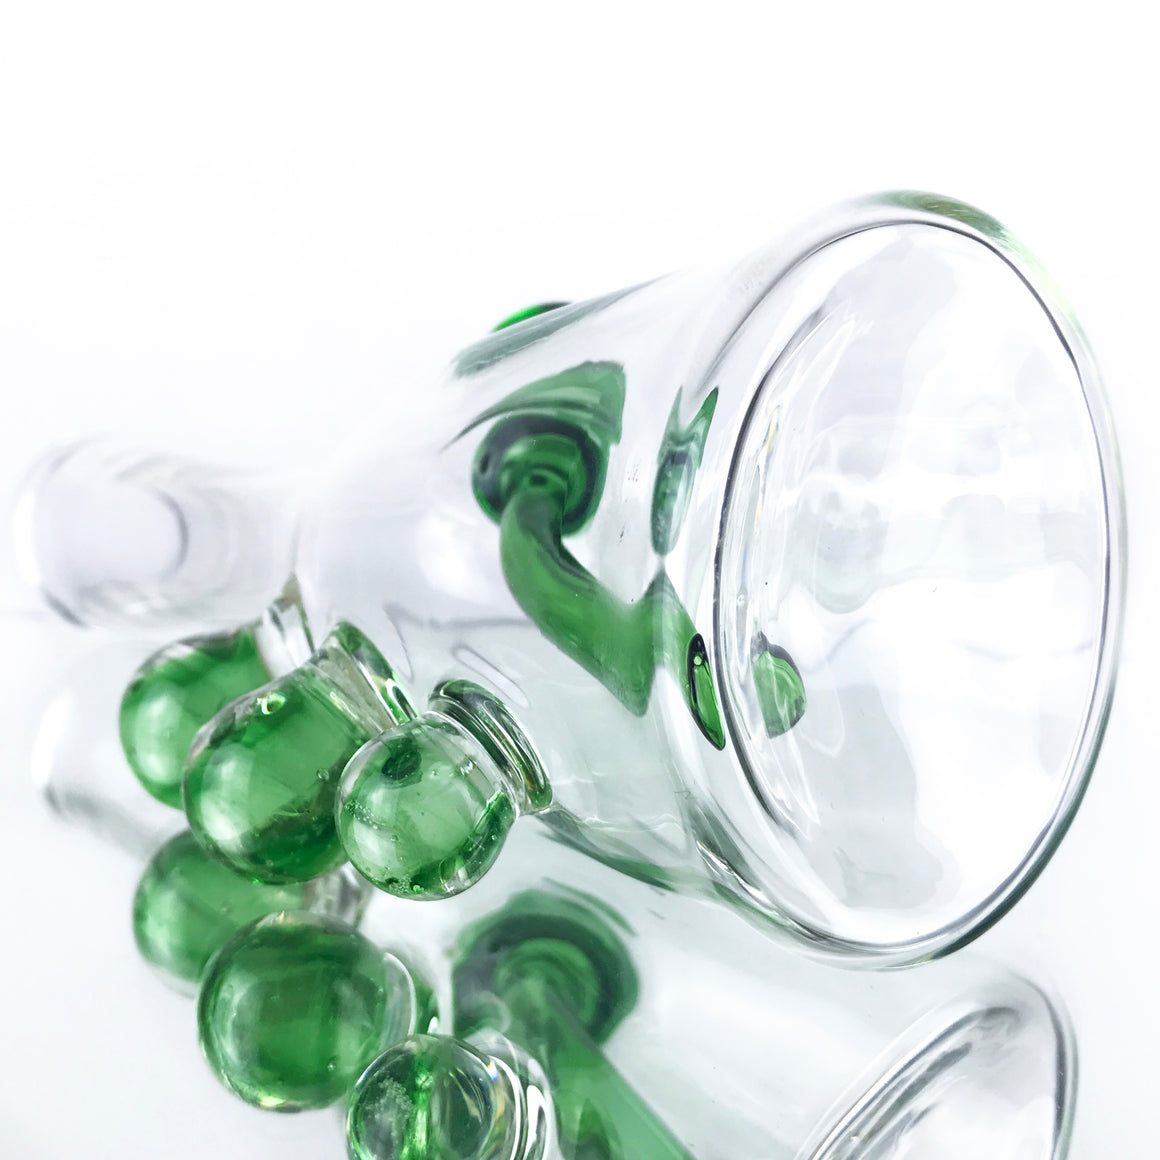 Clear Bottle Rig - Jade Green - 14mm Female